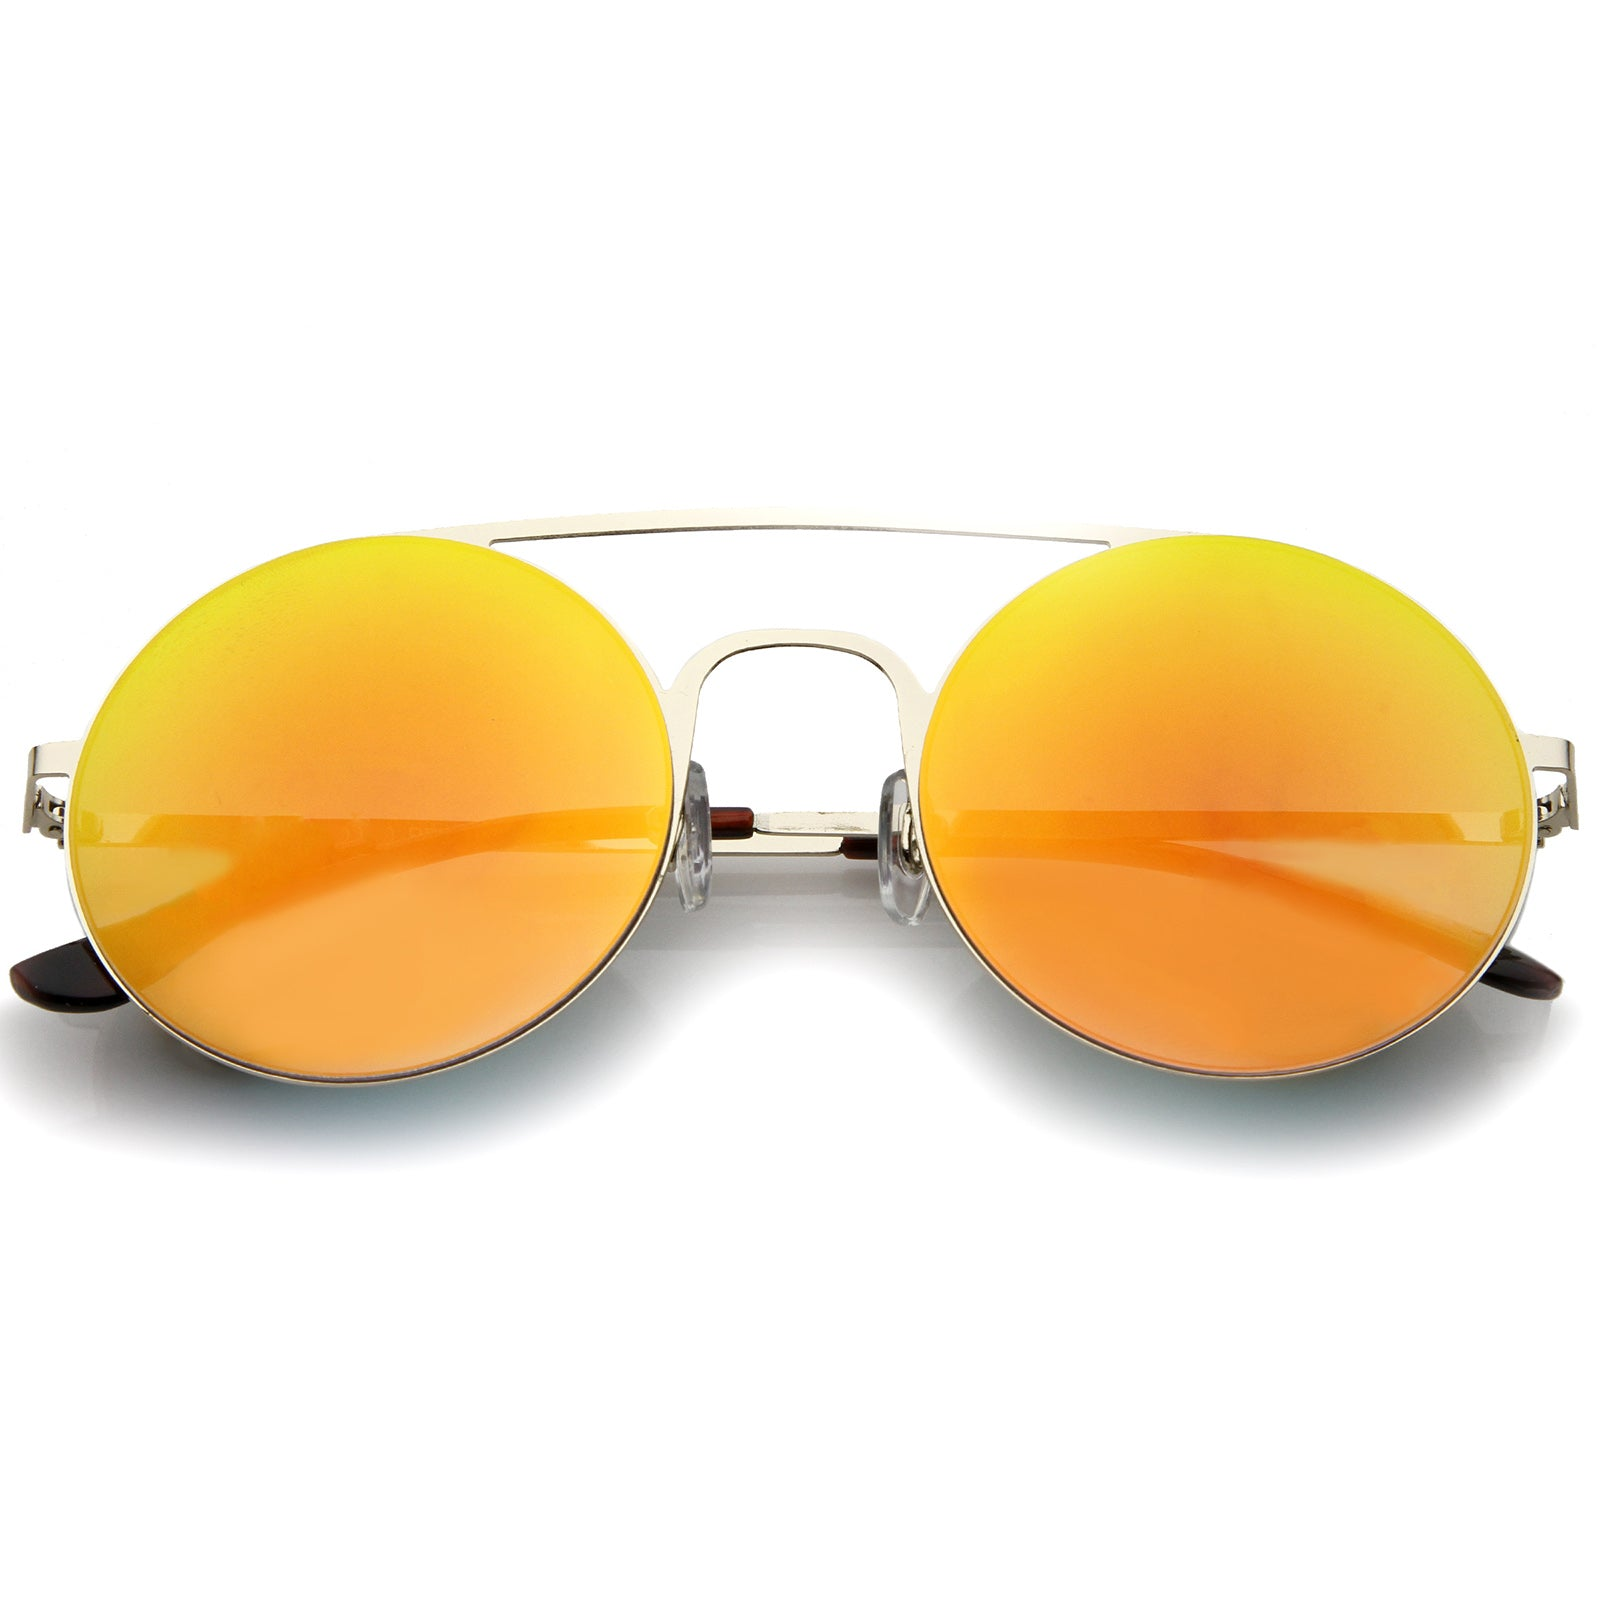 Modern Slim Double Nose Bridge Colored Mirror Flat Lens Round Sunglasses 53mm - sunglass.la - 5